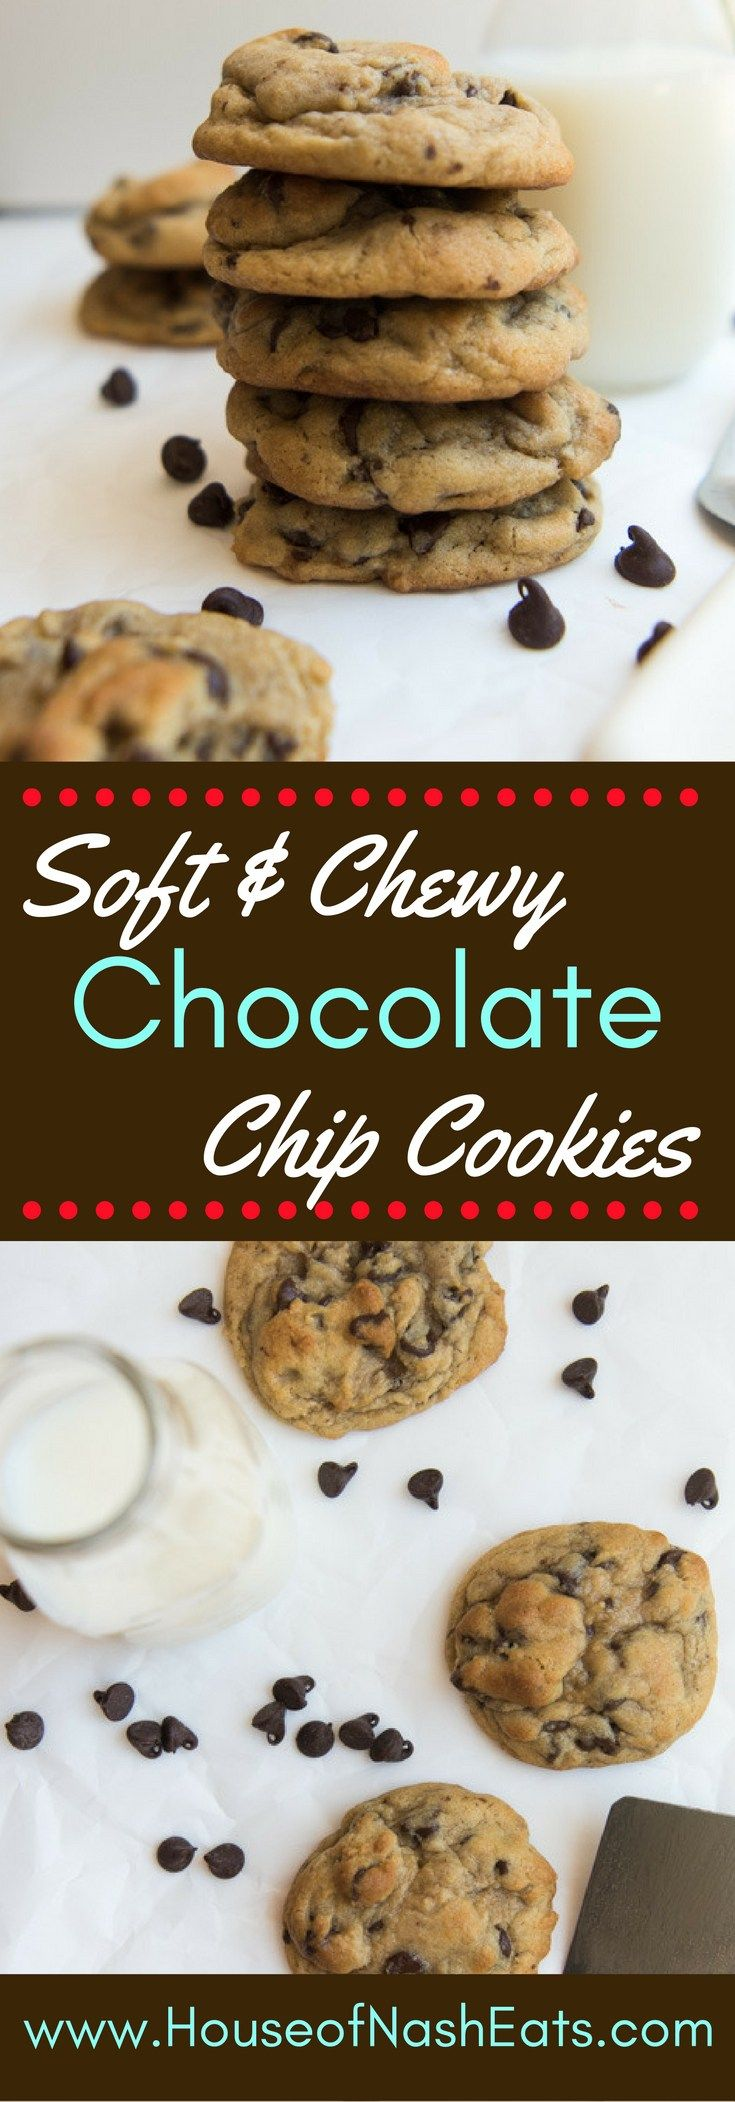 2103 best Cookies, Brownies and Bars images on Pinterest